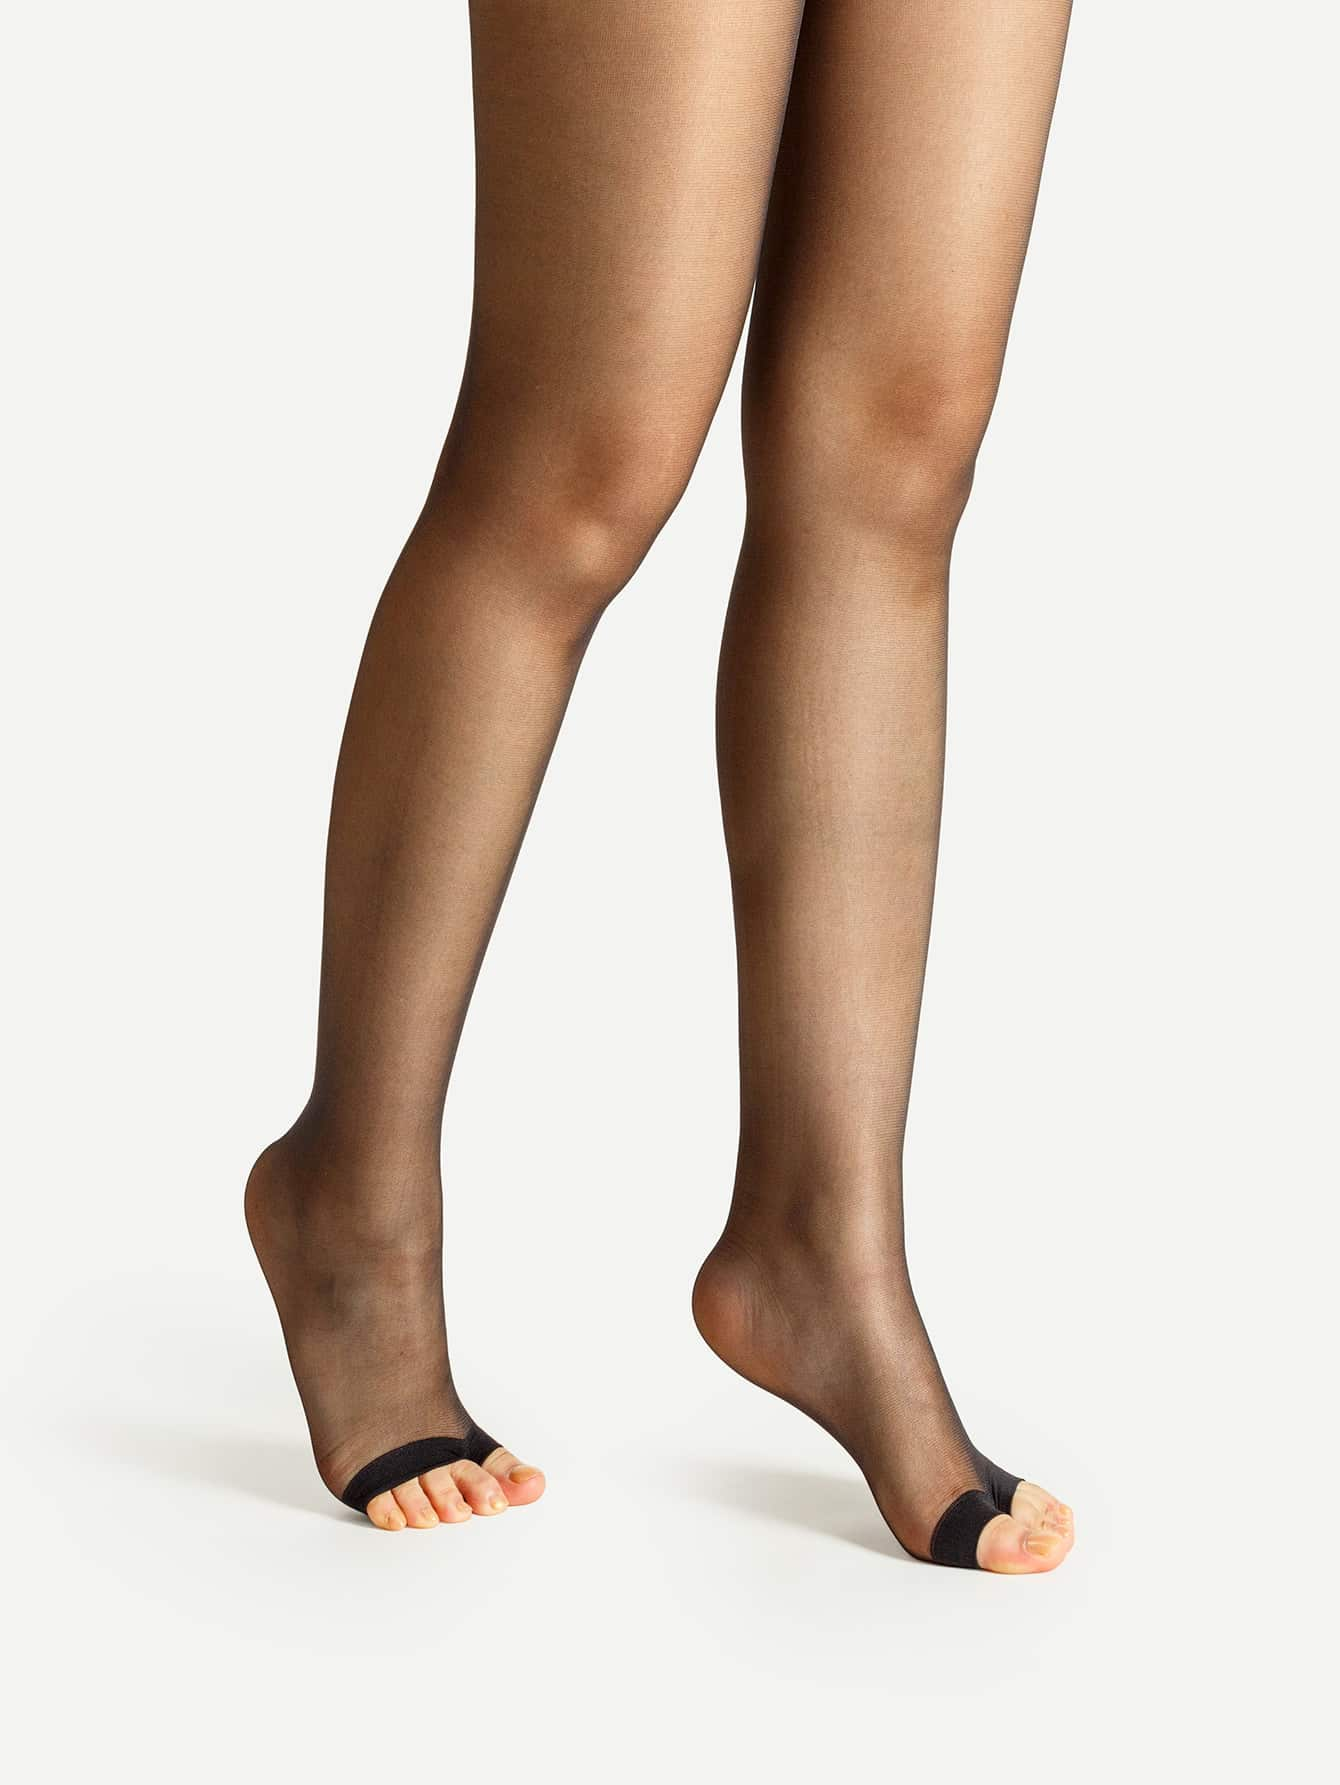 bierek.tk carries a complete selection of dance tights including Dance Tights, Convertible Tights, Discount Tights, Dance tights, Body Wrappers Tights, Discount Dance Tights, Bloch Tights.